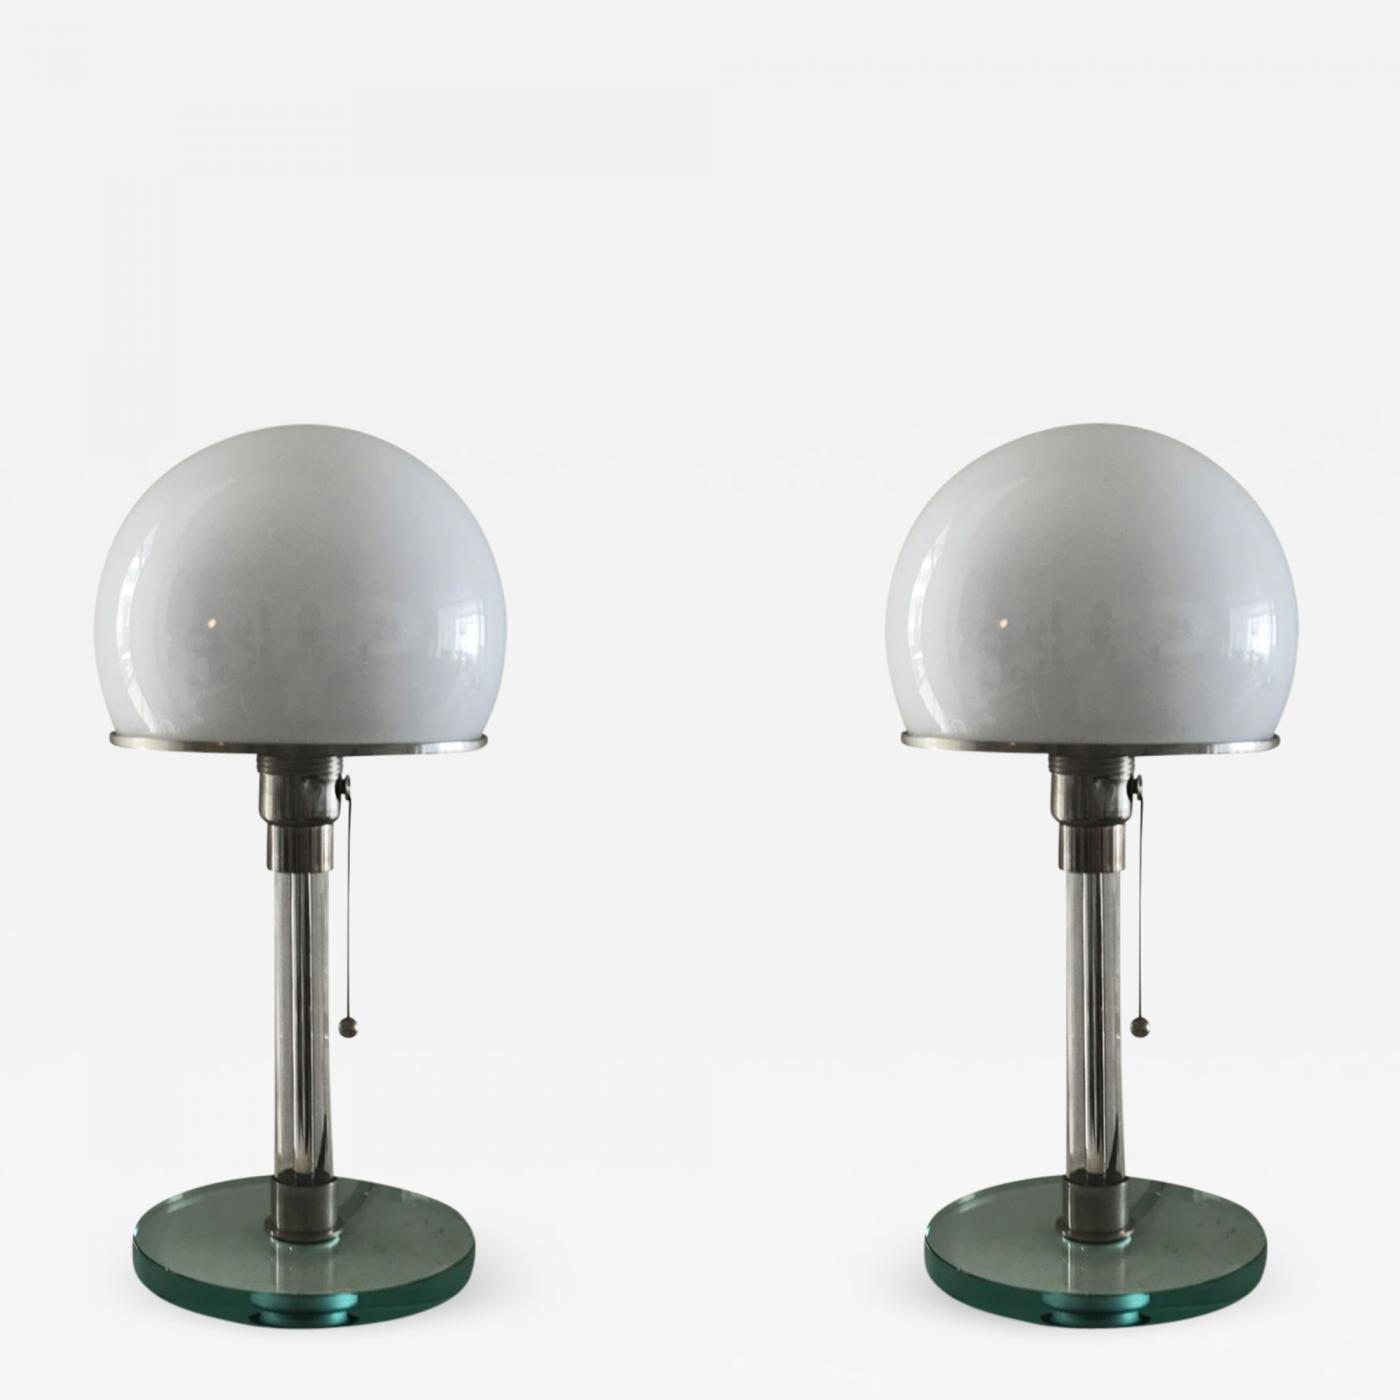 Wilhelm Wagenfeld Pair Of Table Lamps After The Design By Wilhelm